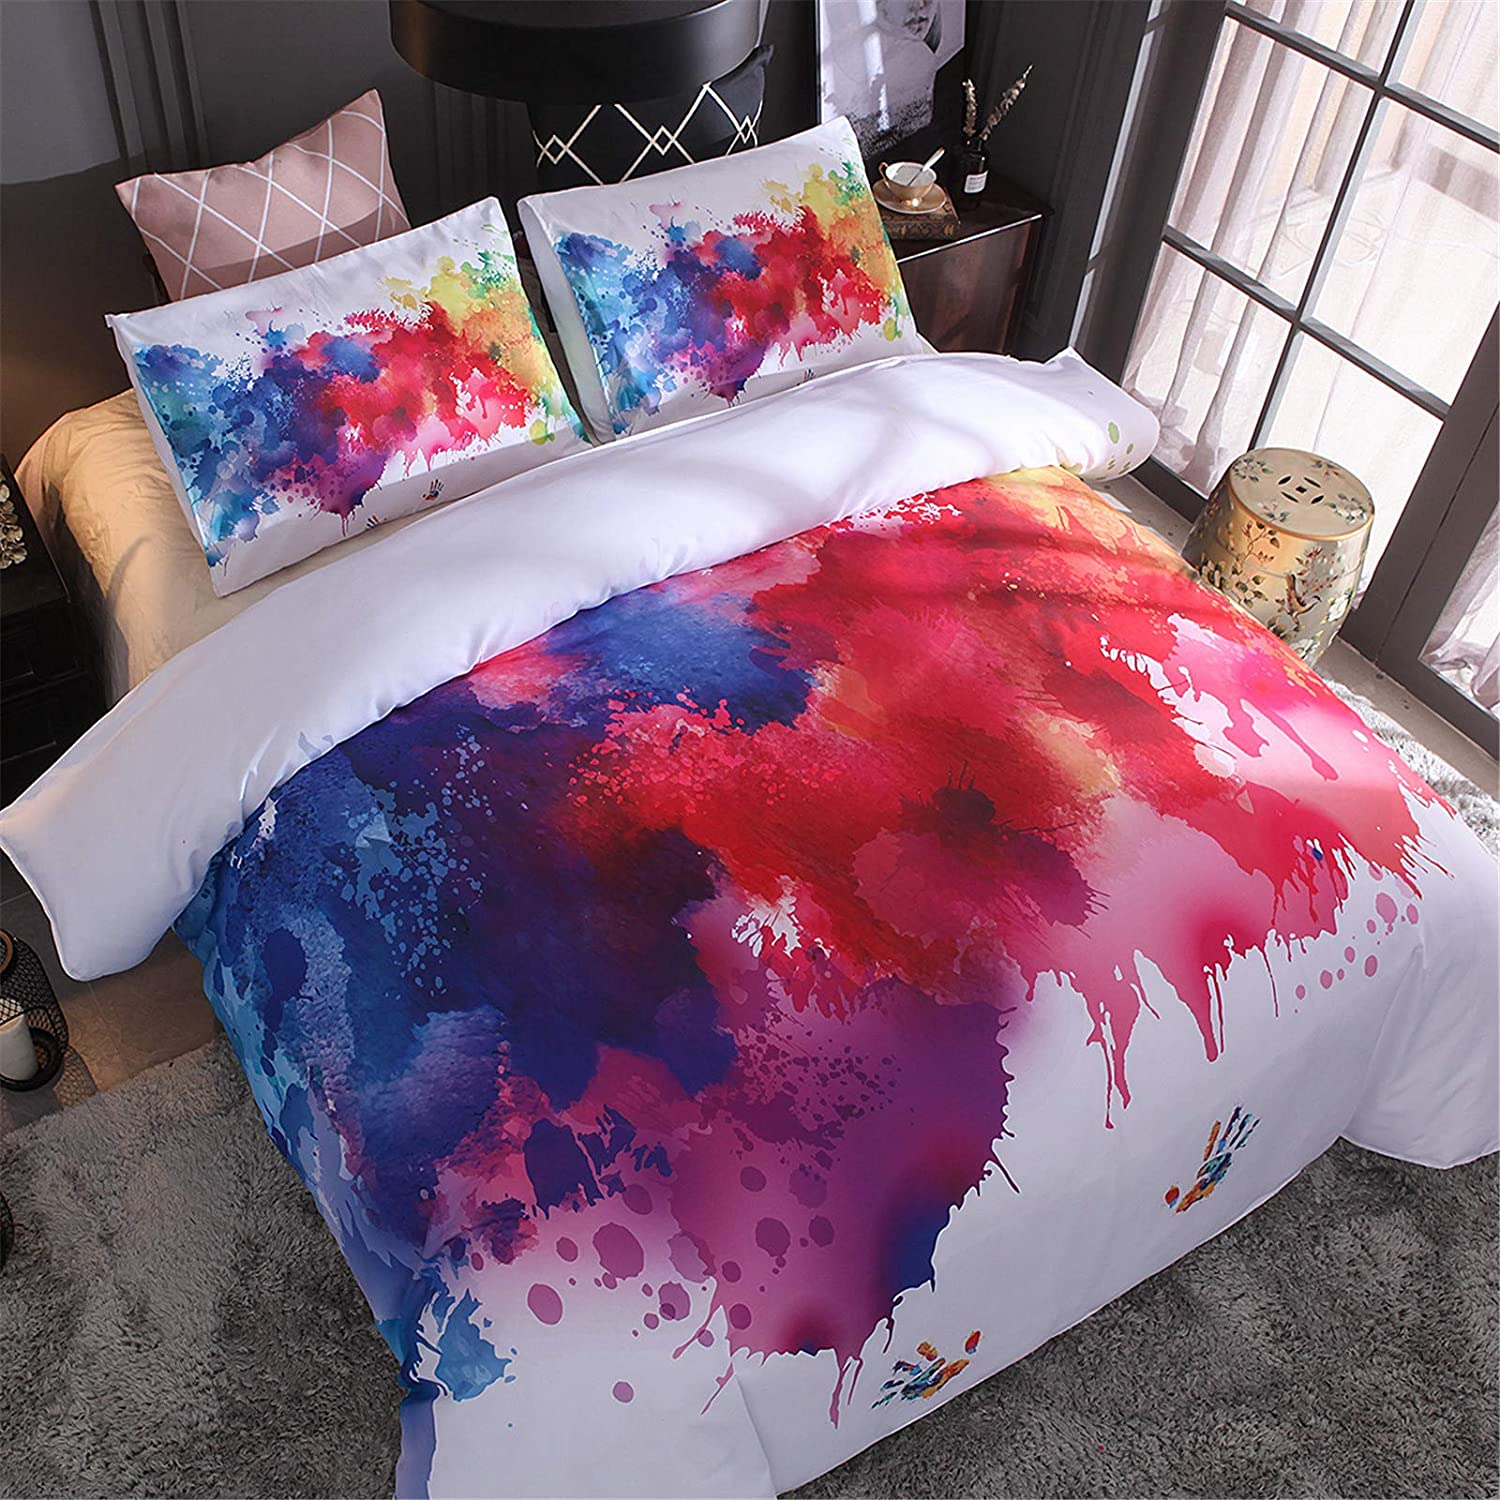 A Nice Night Watercolor Duvet Cover Set Multicolored Hand Decorative 3